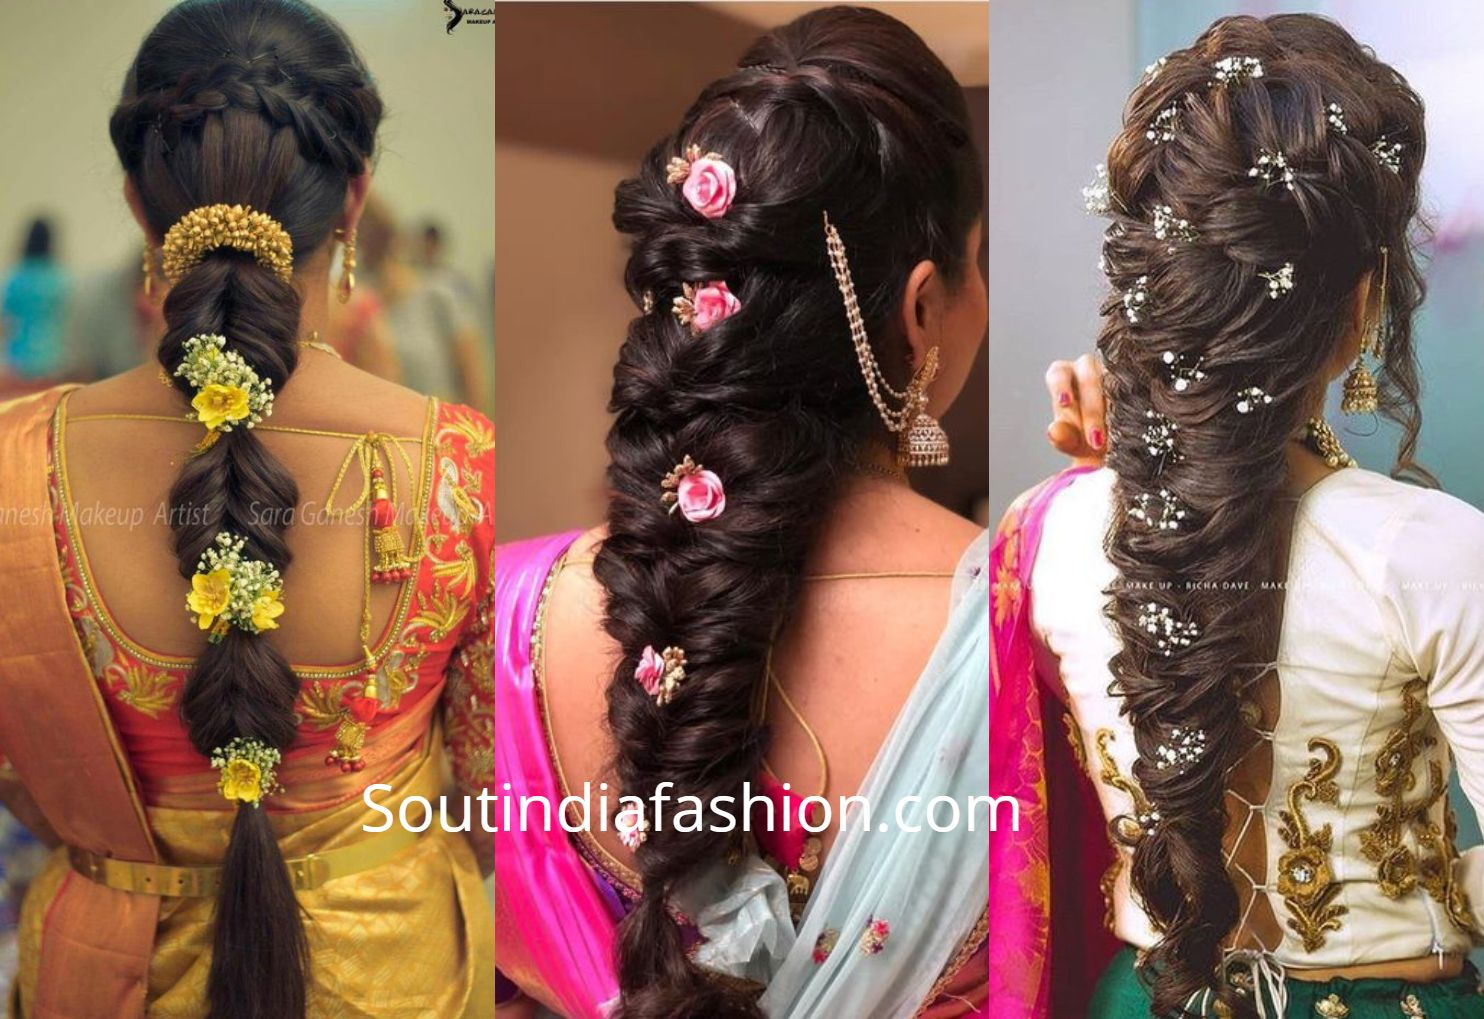 Top 10 South Indian Bridal Hairstyles For Weddings Engagement Etc Wedding Hairstyles For Long Hair Engagement Hairstyles Bridal Hairstyle For Reception